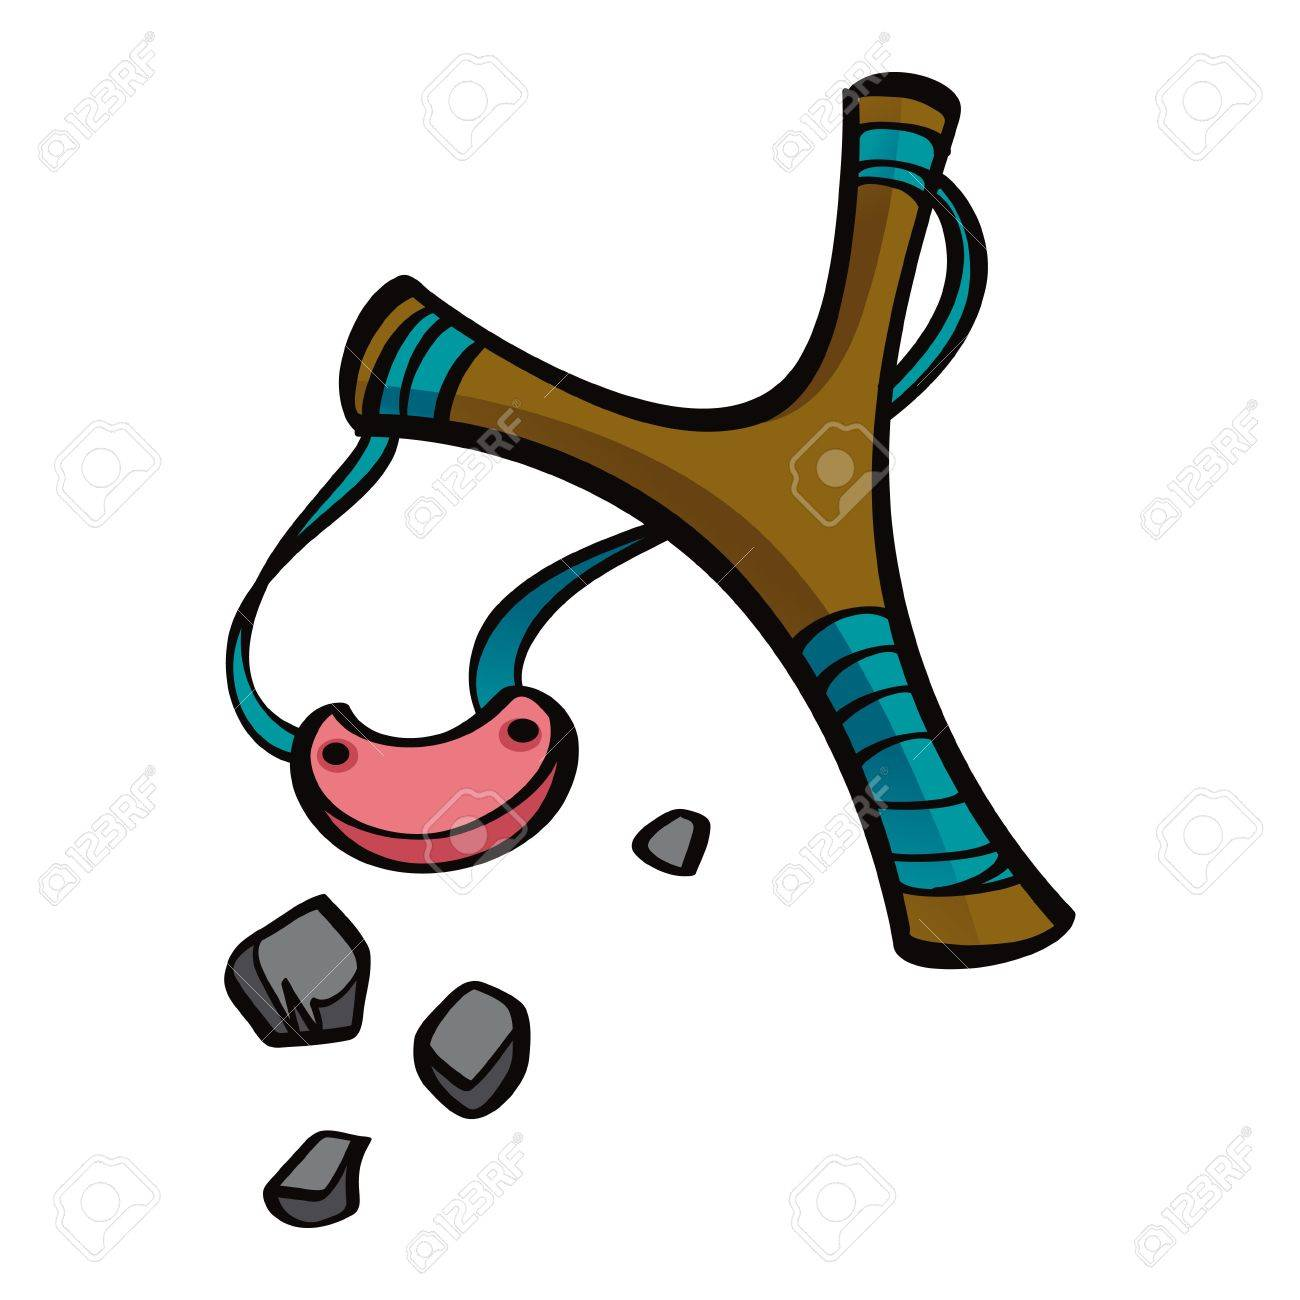 Old style wooden toy or weapon Slingshot with stones Stock Vector - 14410315